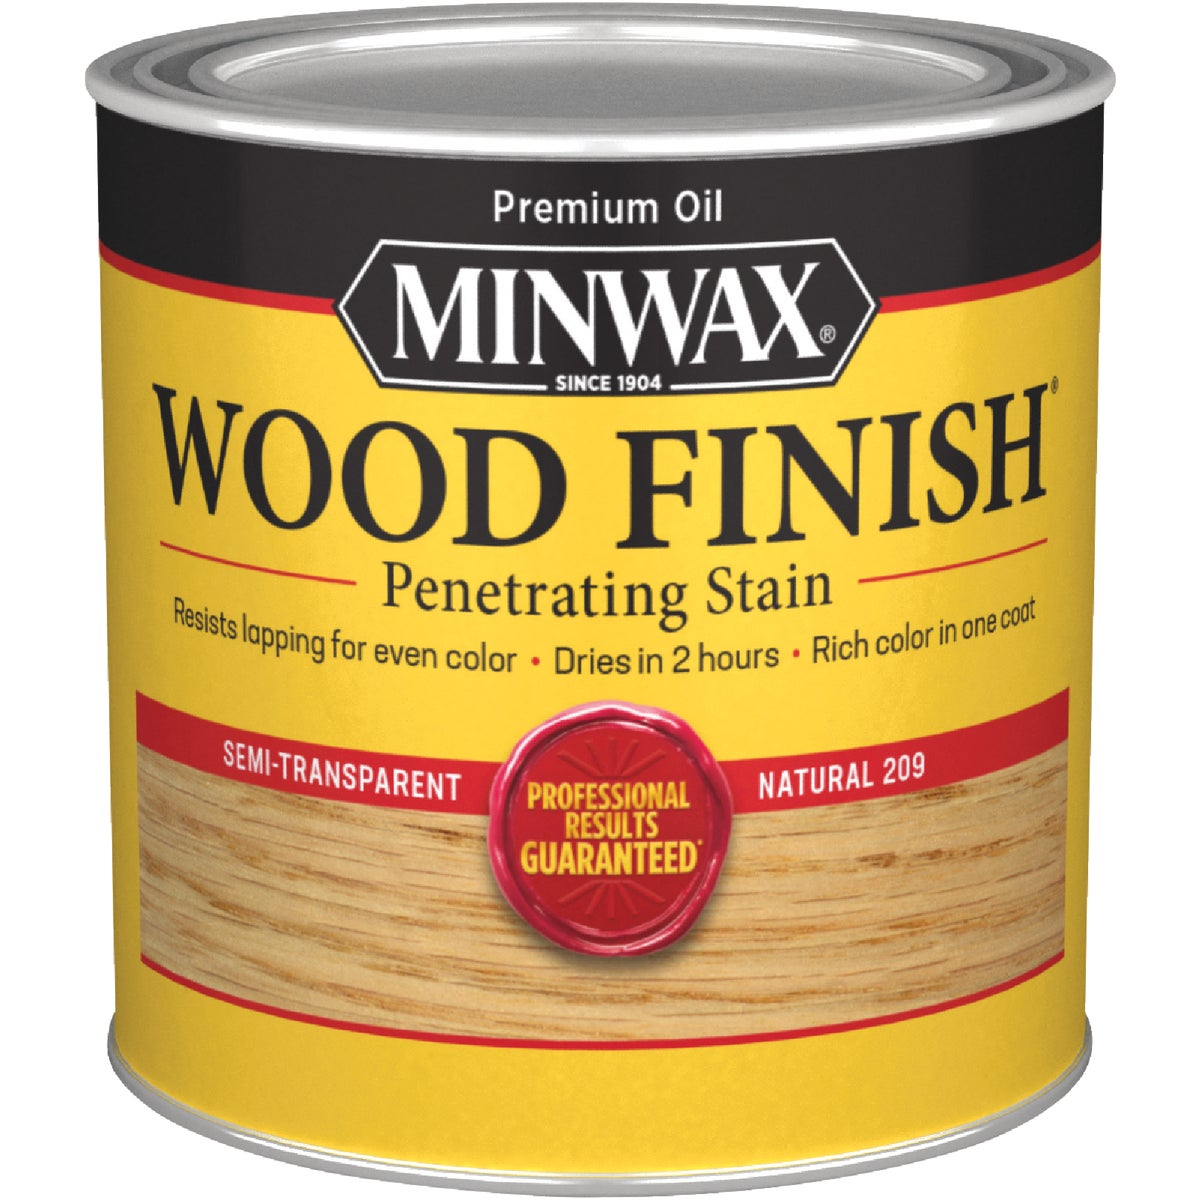 NATURAL WOOD STAIN - 220904444 by Minwax Company